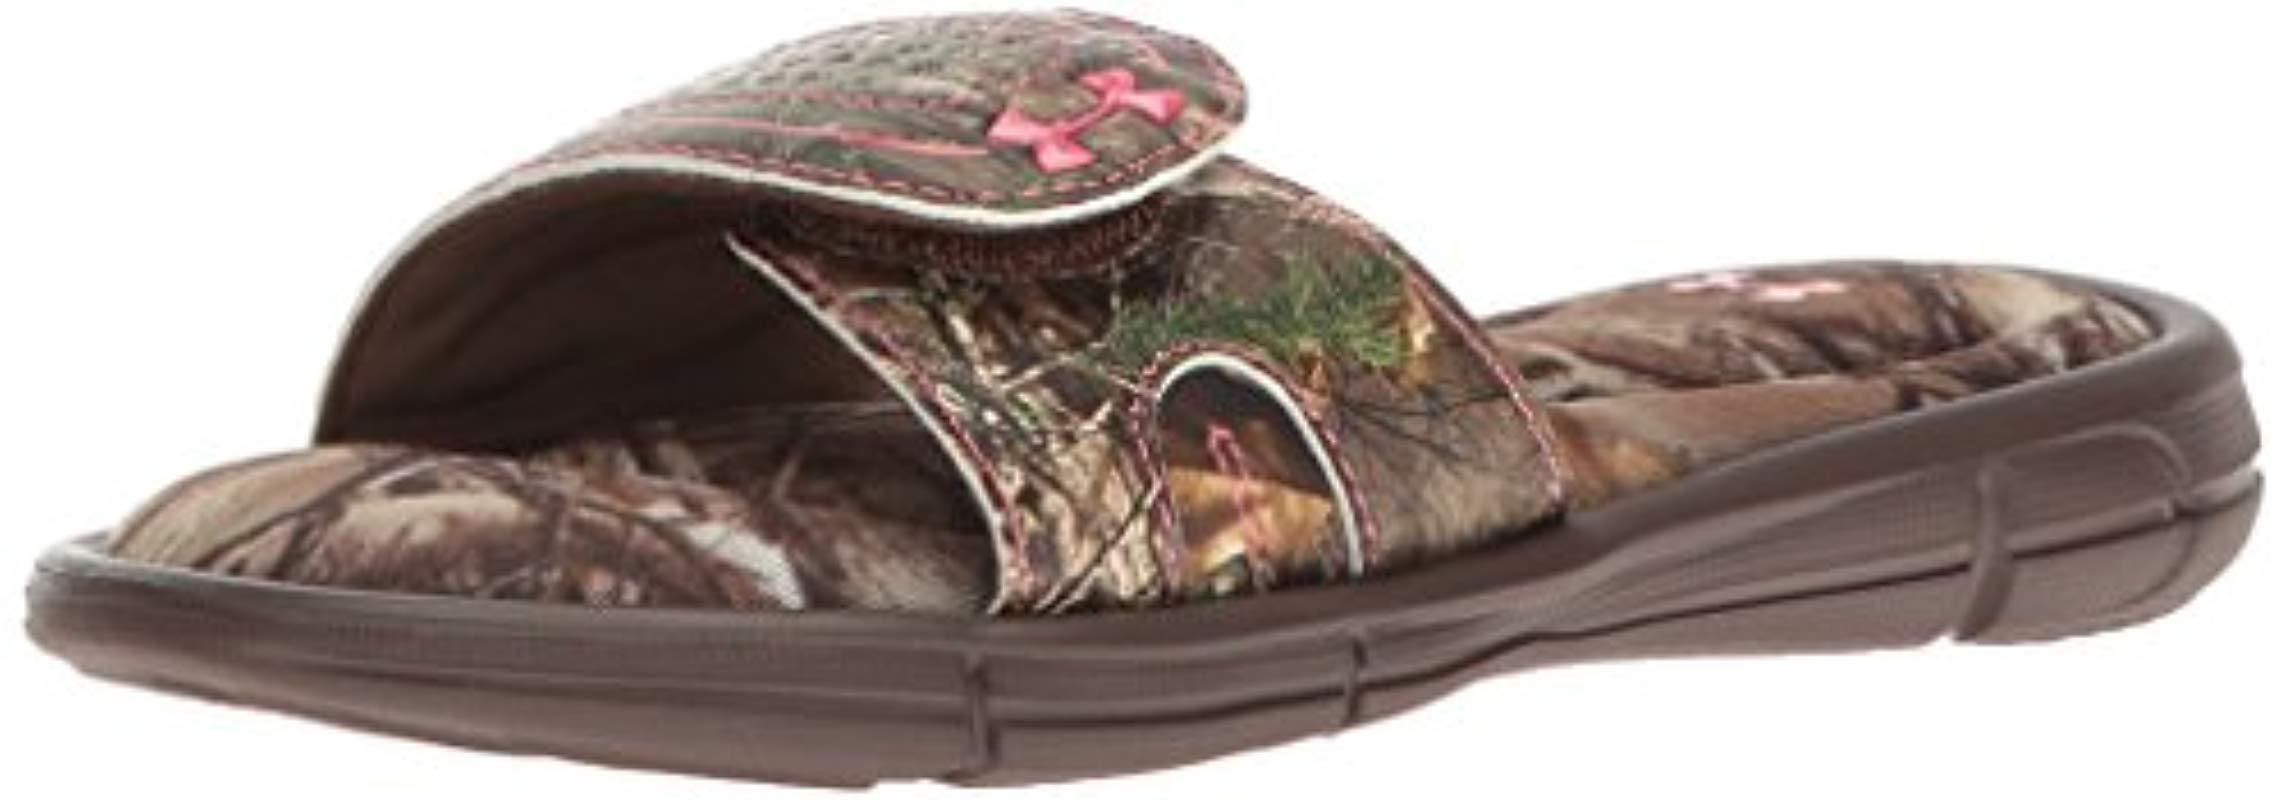 cec0c47d48fd Lyst - Under Armour Girls  Ignite Camo Vii Slide Sandal in Brown for Men